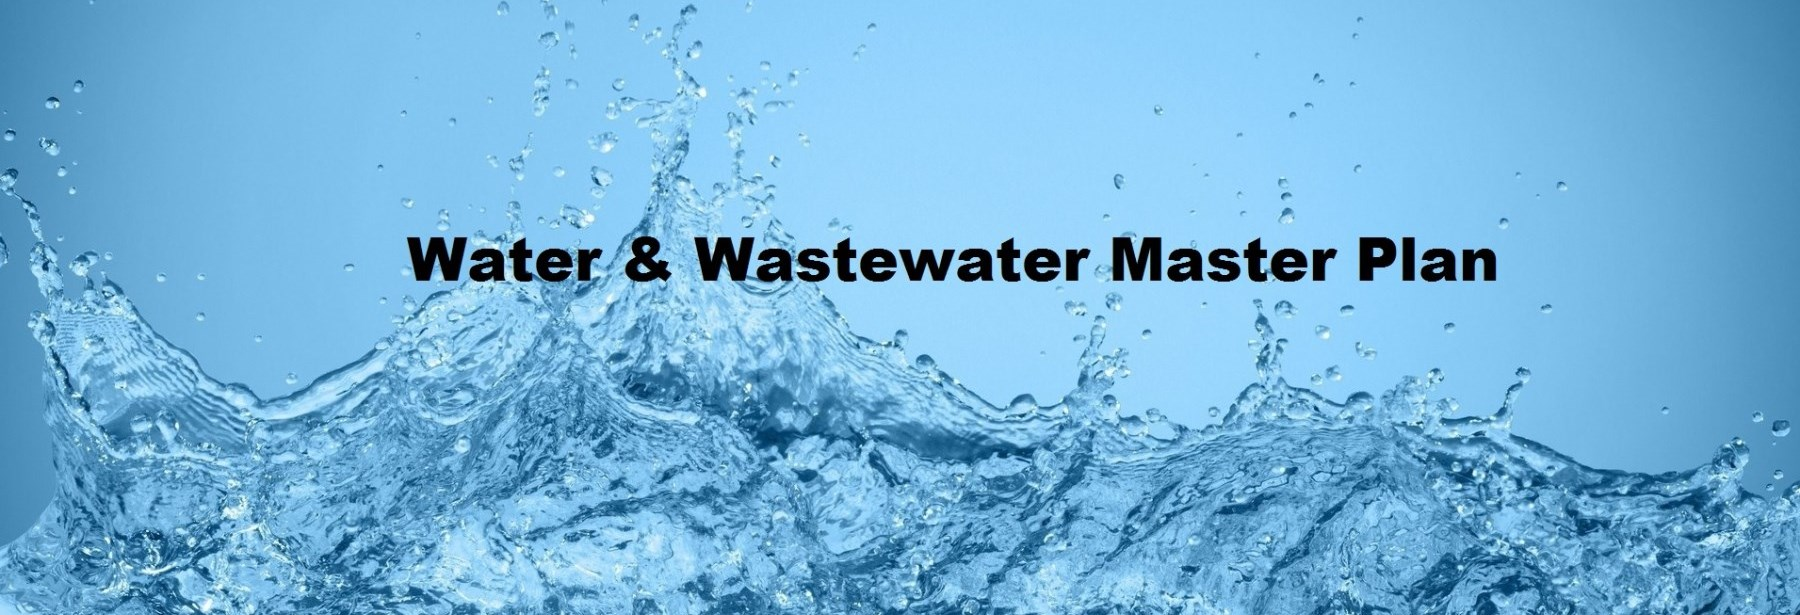 Water and Wastewater Master Plan banner